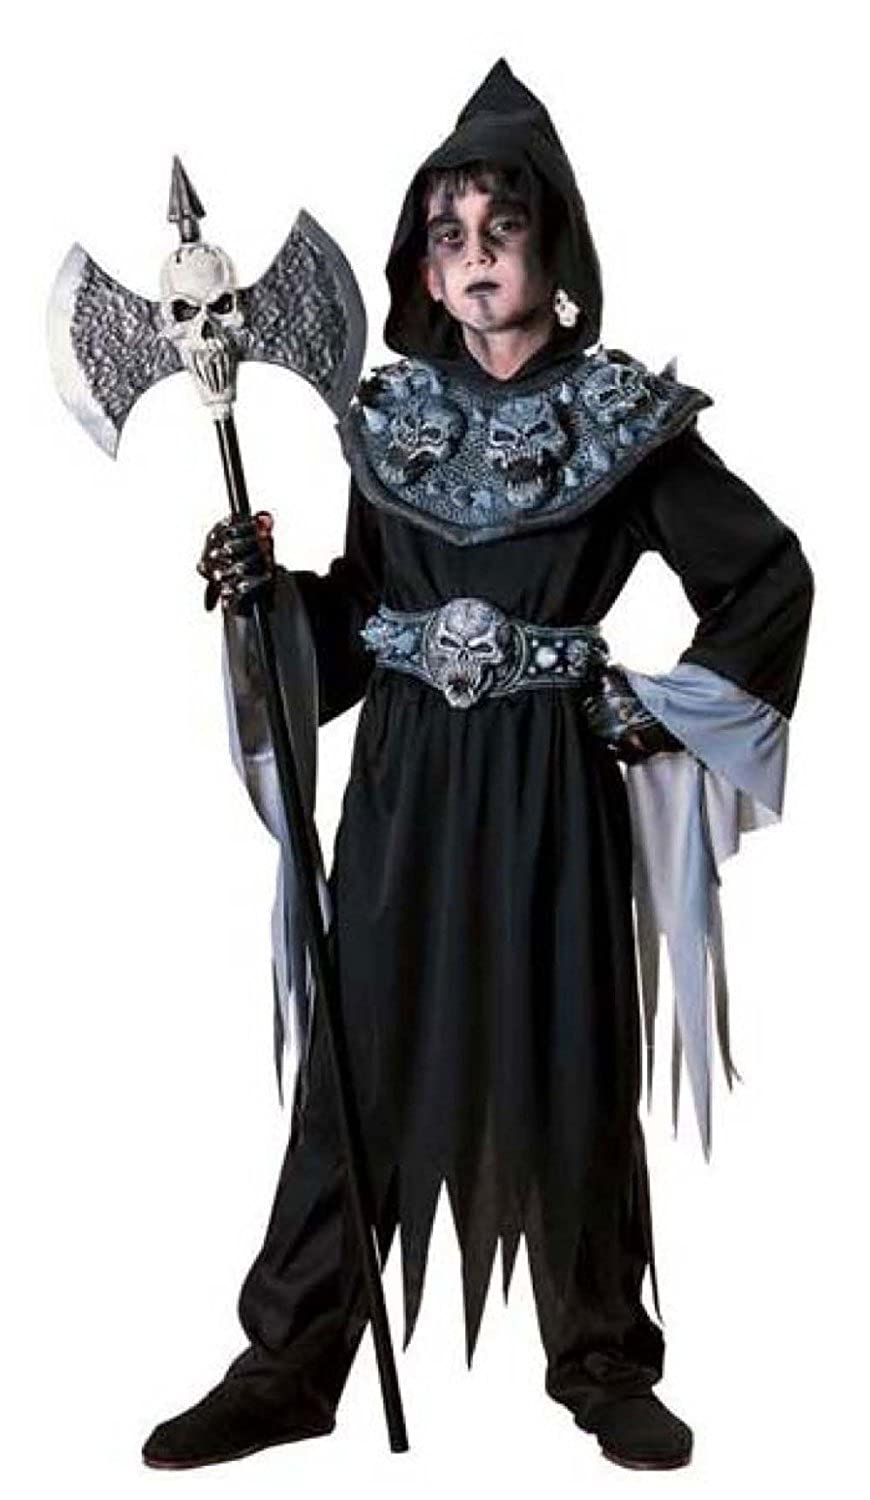 Amazon.com: Skull Warriors Plastic Battle Axe Costume Accessory ...